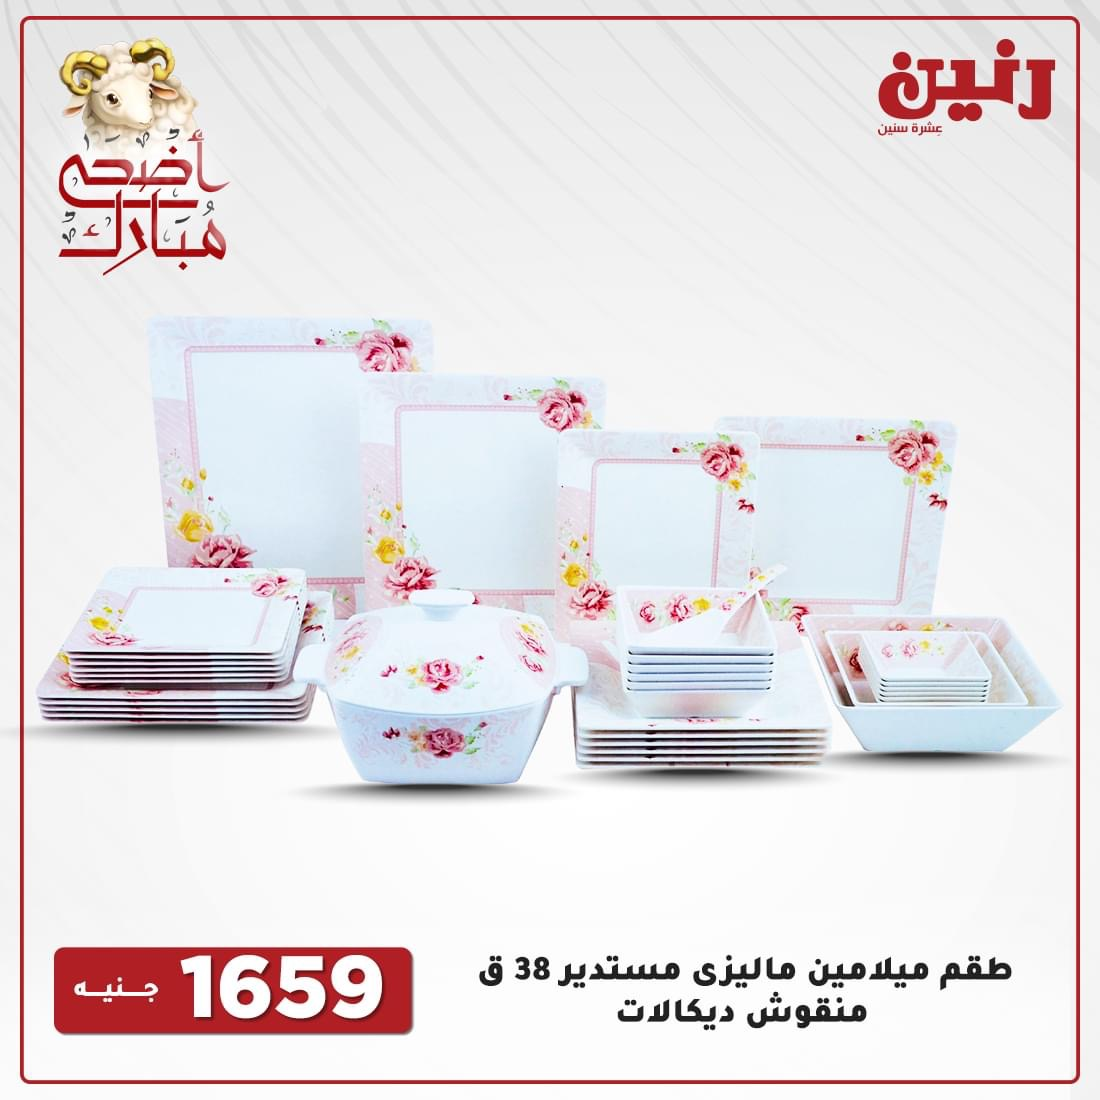 Raneen offers today for appliances and household appliances from July 22 to 24, 2021 21